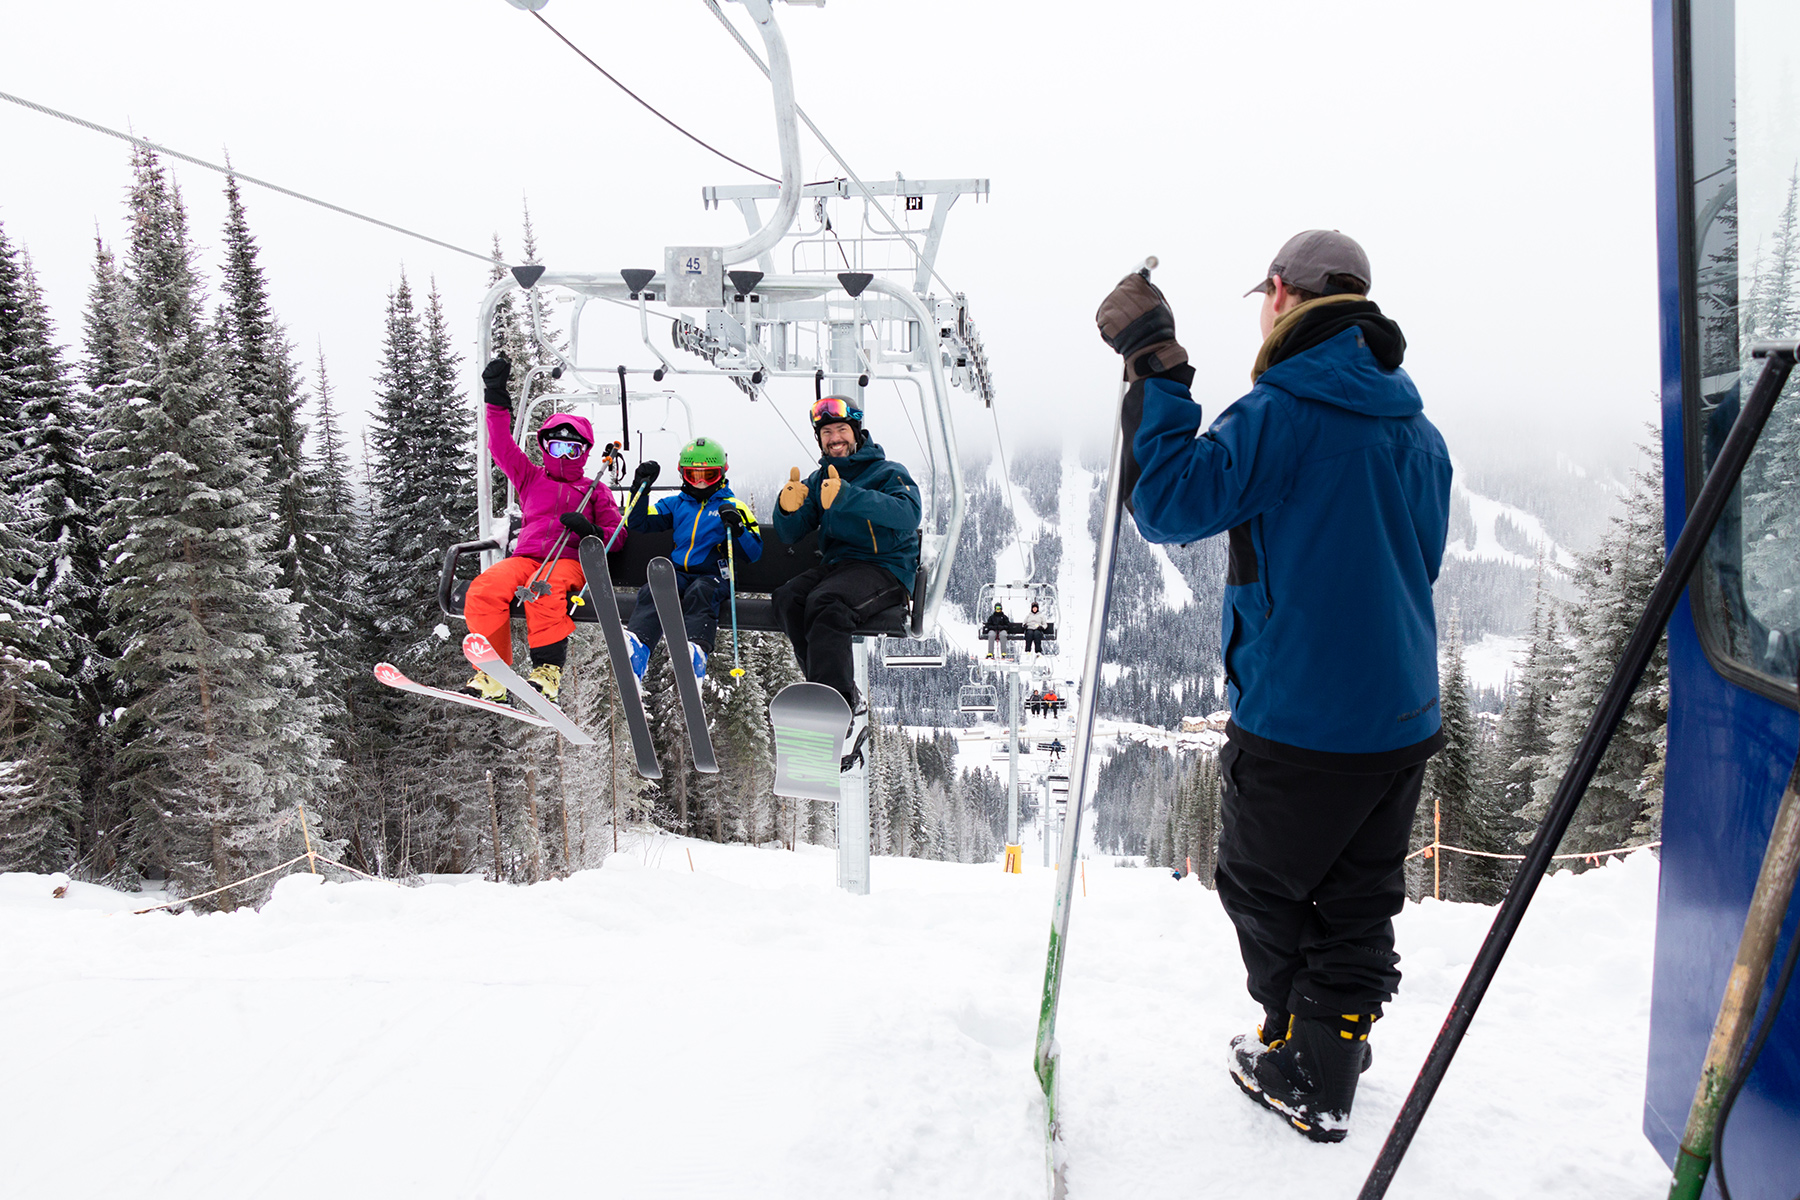 Guests at the Top of the New Orient Chairlift